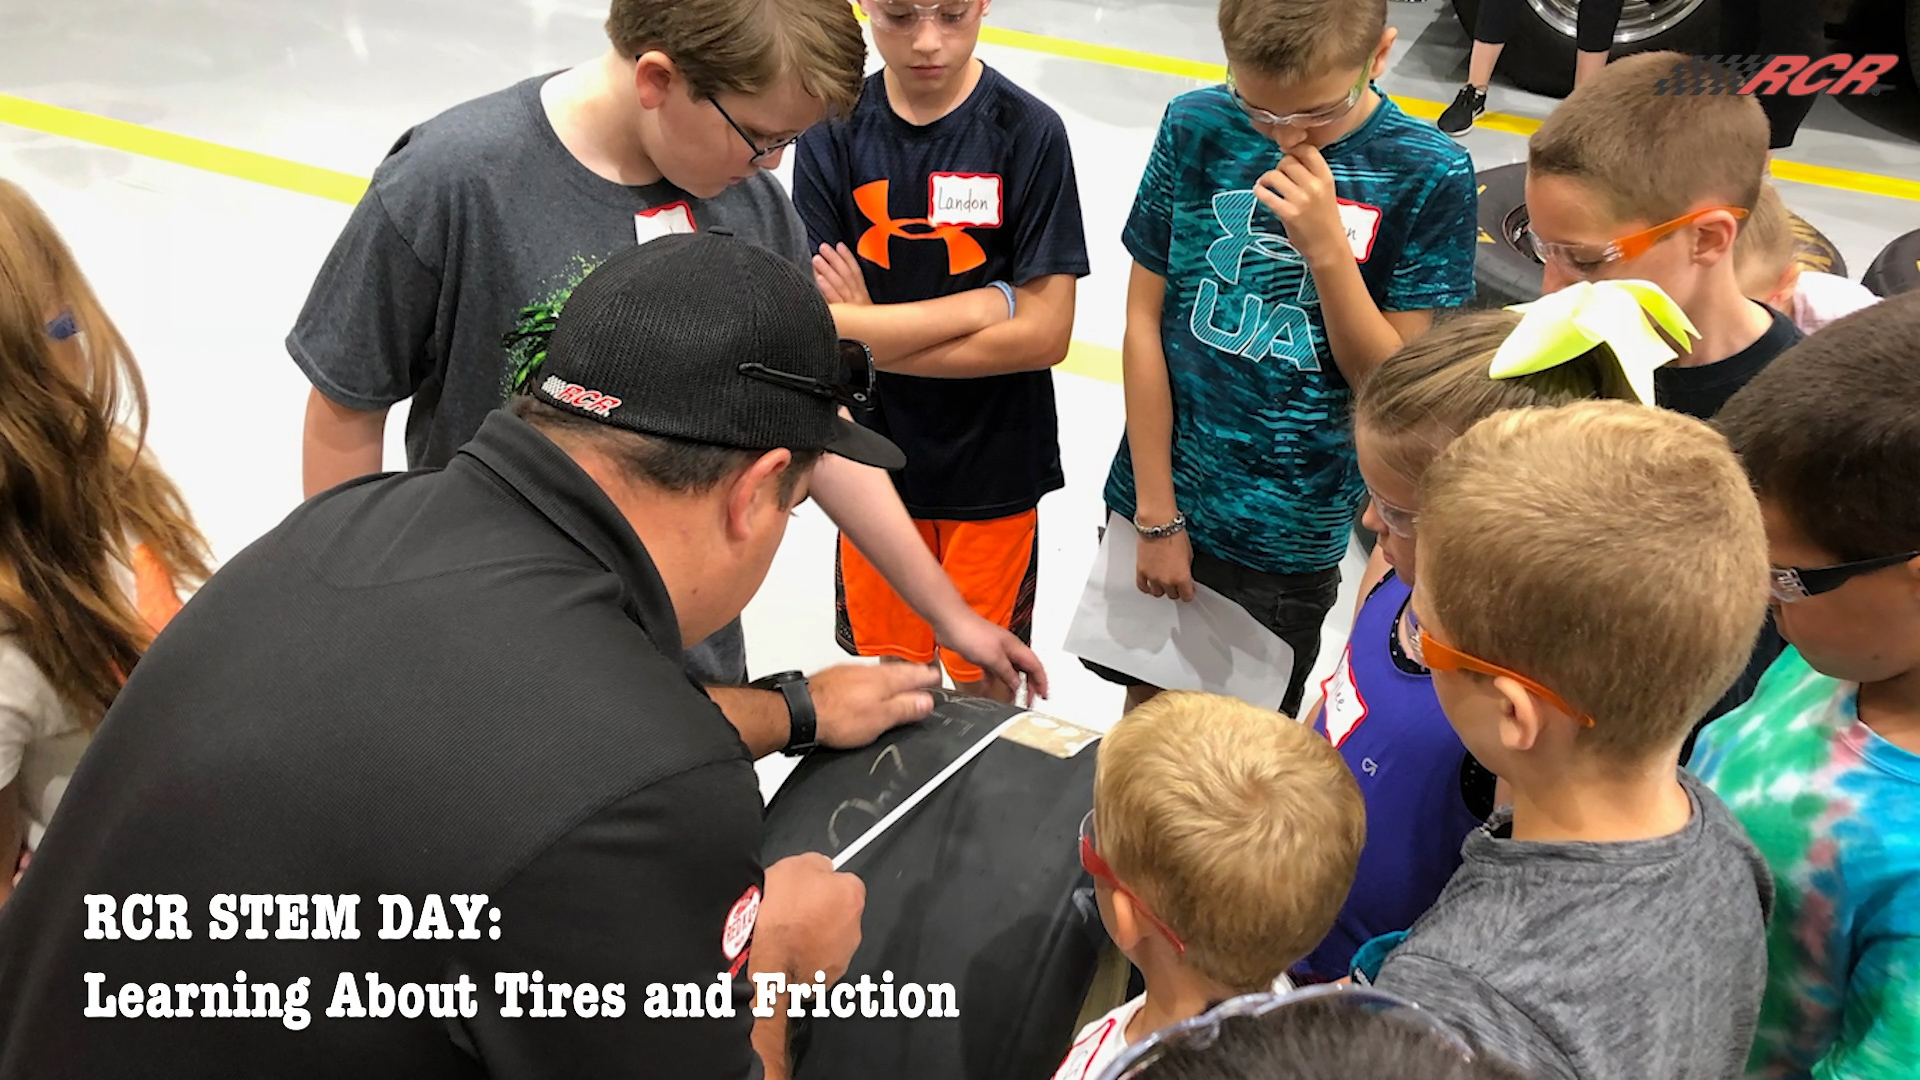 RCR STEM Day: Kids Learn About Tires and Friction